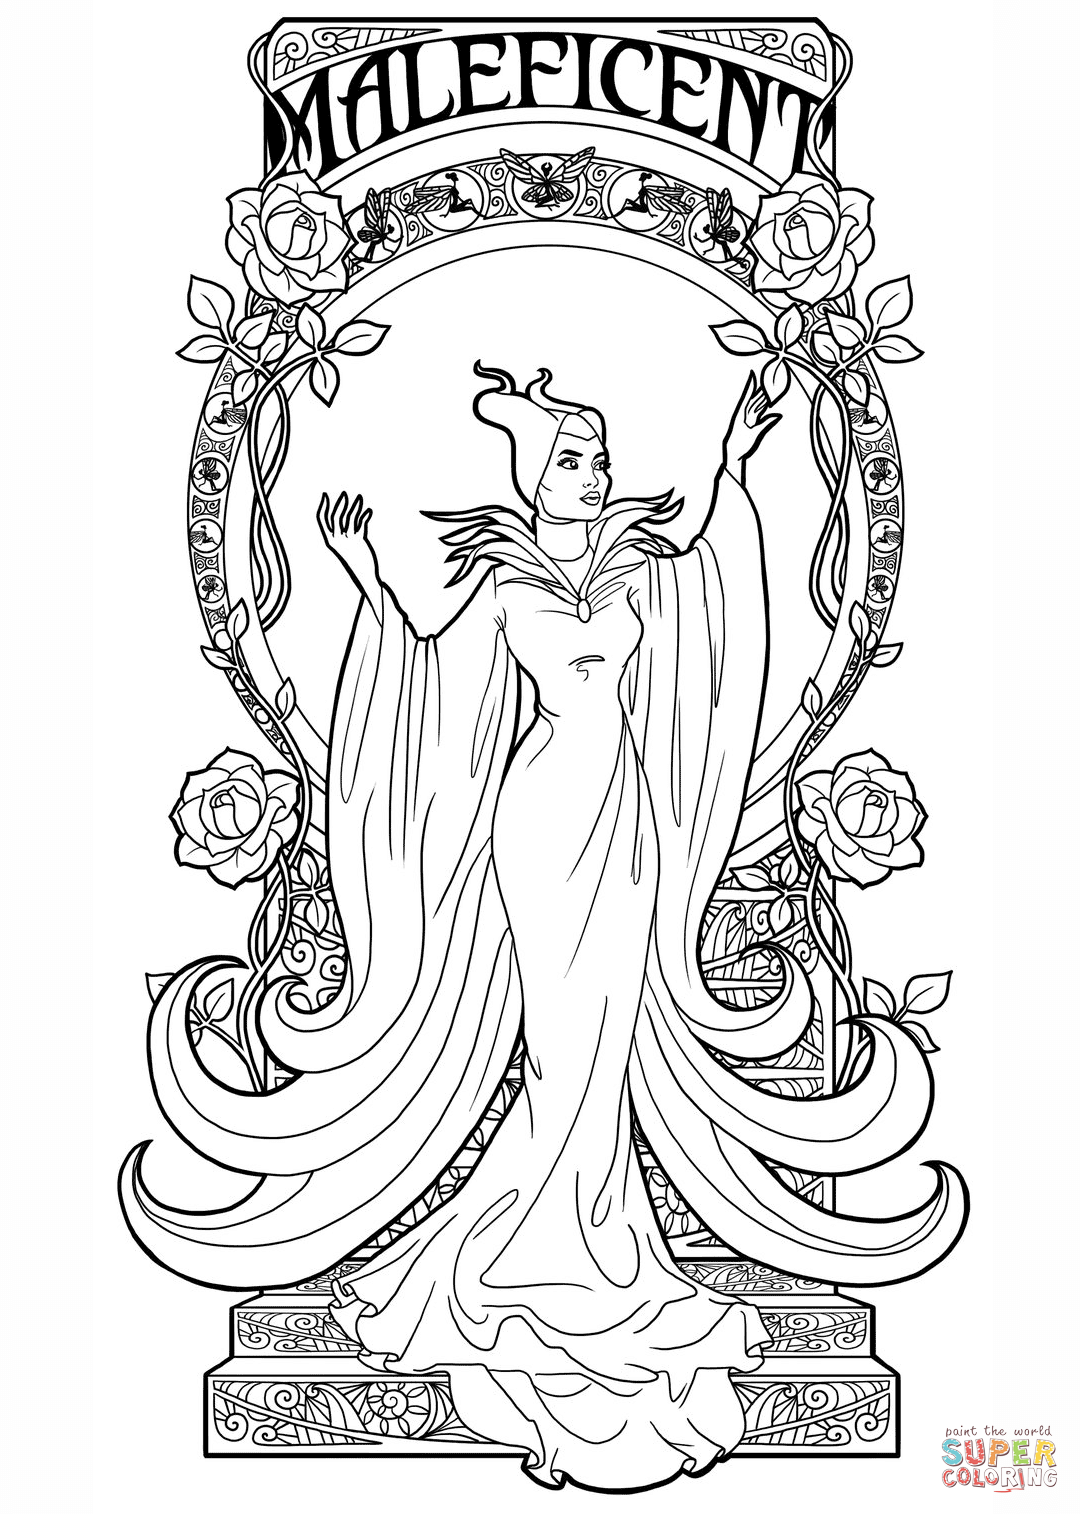 maleficent-coloring-page-0021-q1